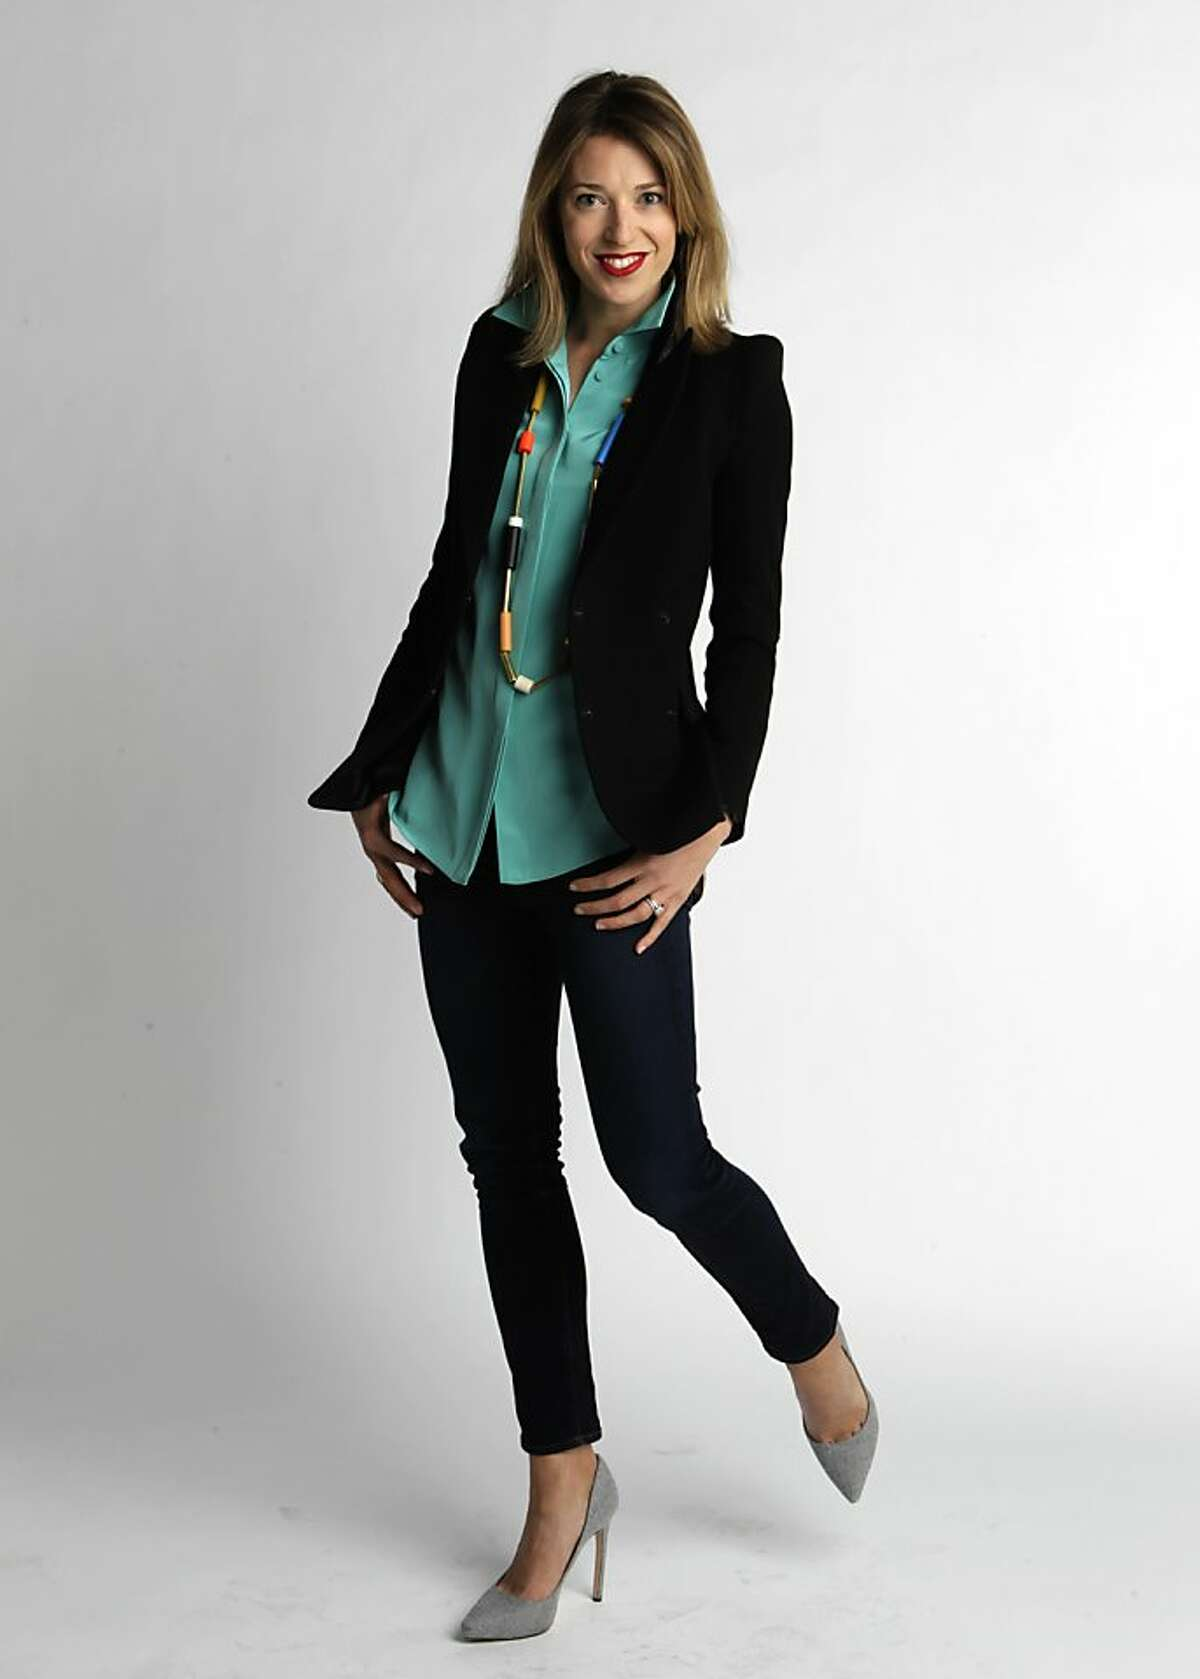 Erin Hiemstra, seen in San Francisco, Calif. on Friday, Feb. 22, 2013, is in this week's Stylemaker Spotlight.